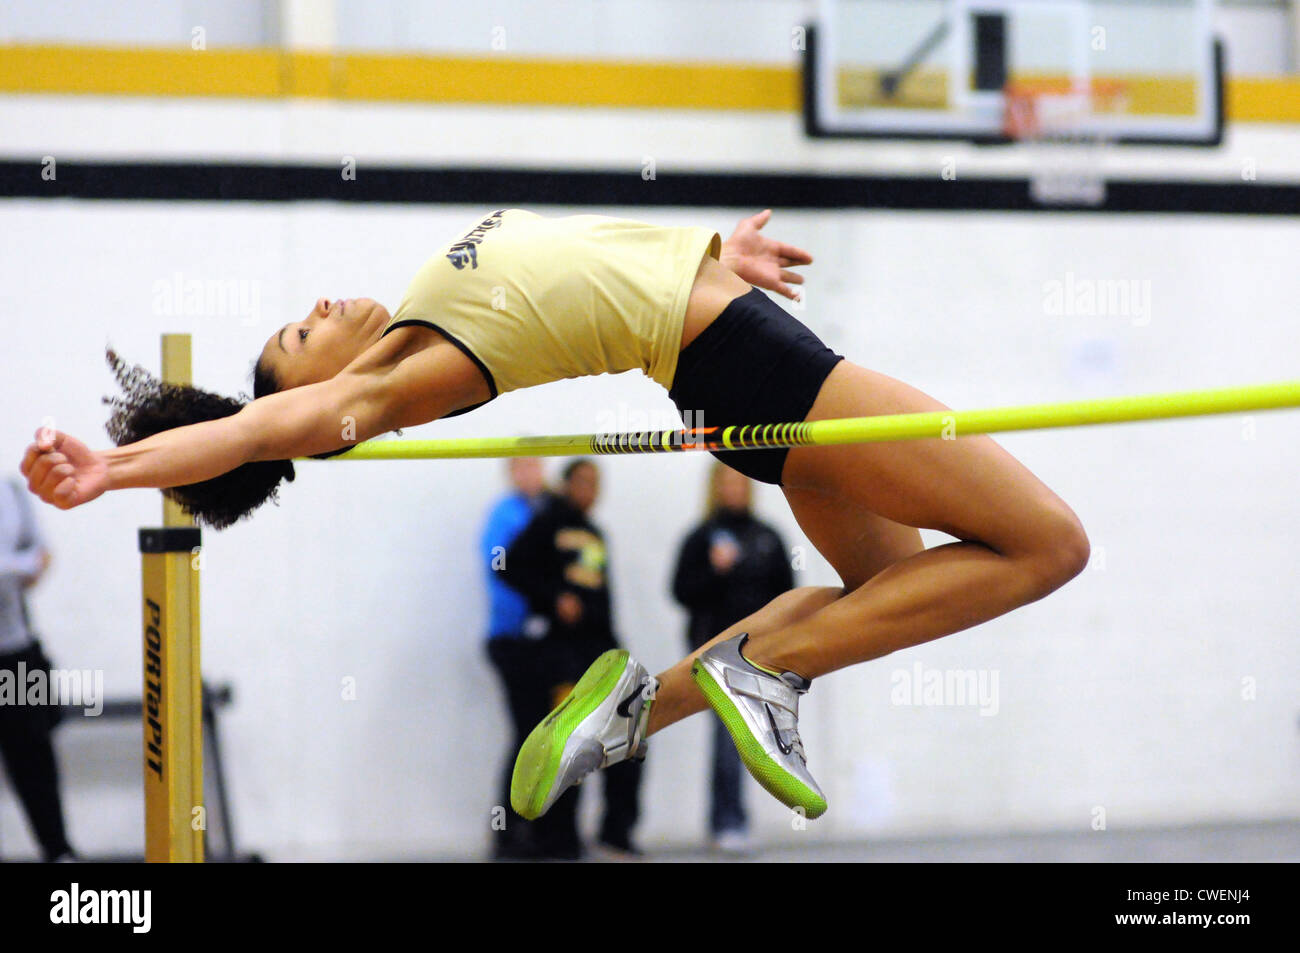 High Jump Female athlete clears the bar on a high jump pass during a high school indoor track meet. USA. - Stock Image